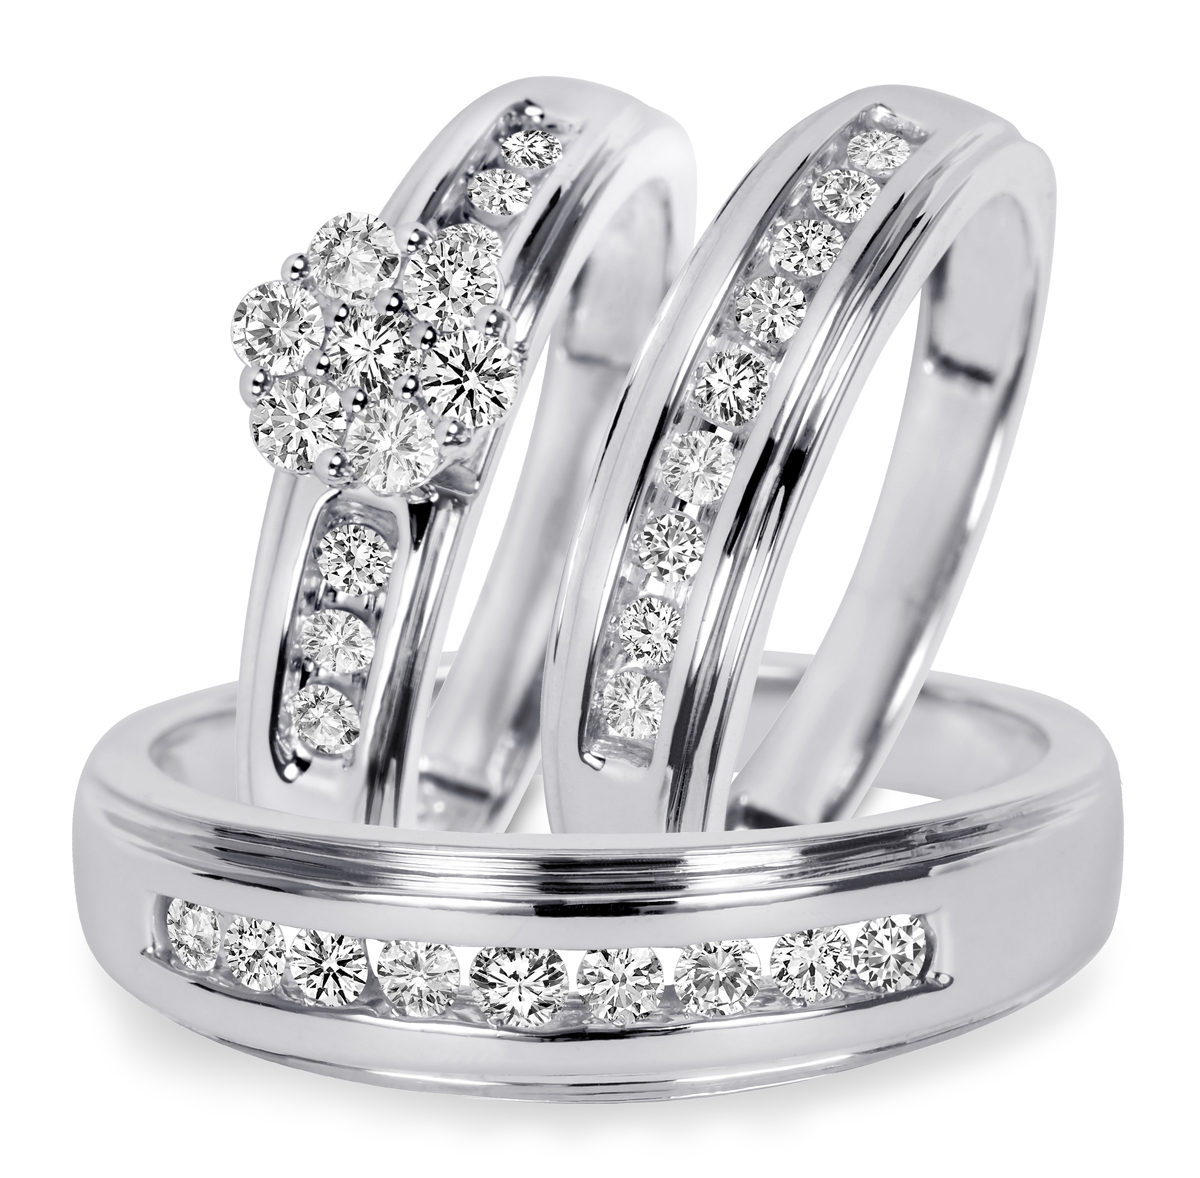 34 CT TW Diamond Trio Matching Wedding Ring Set 14K